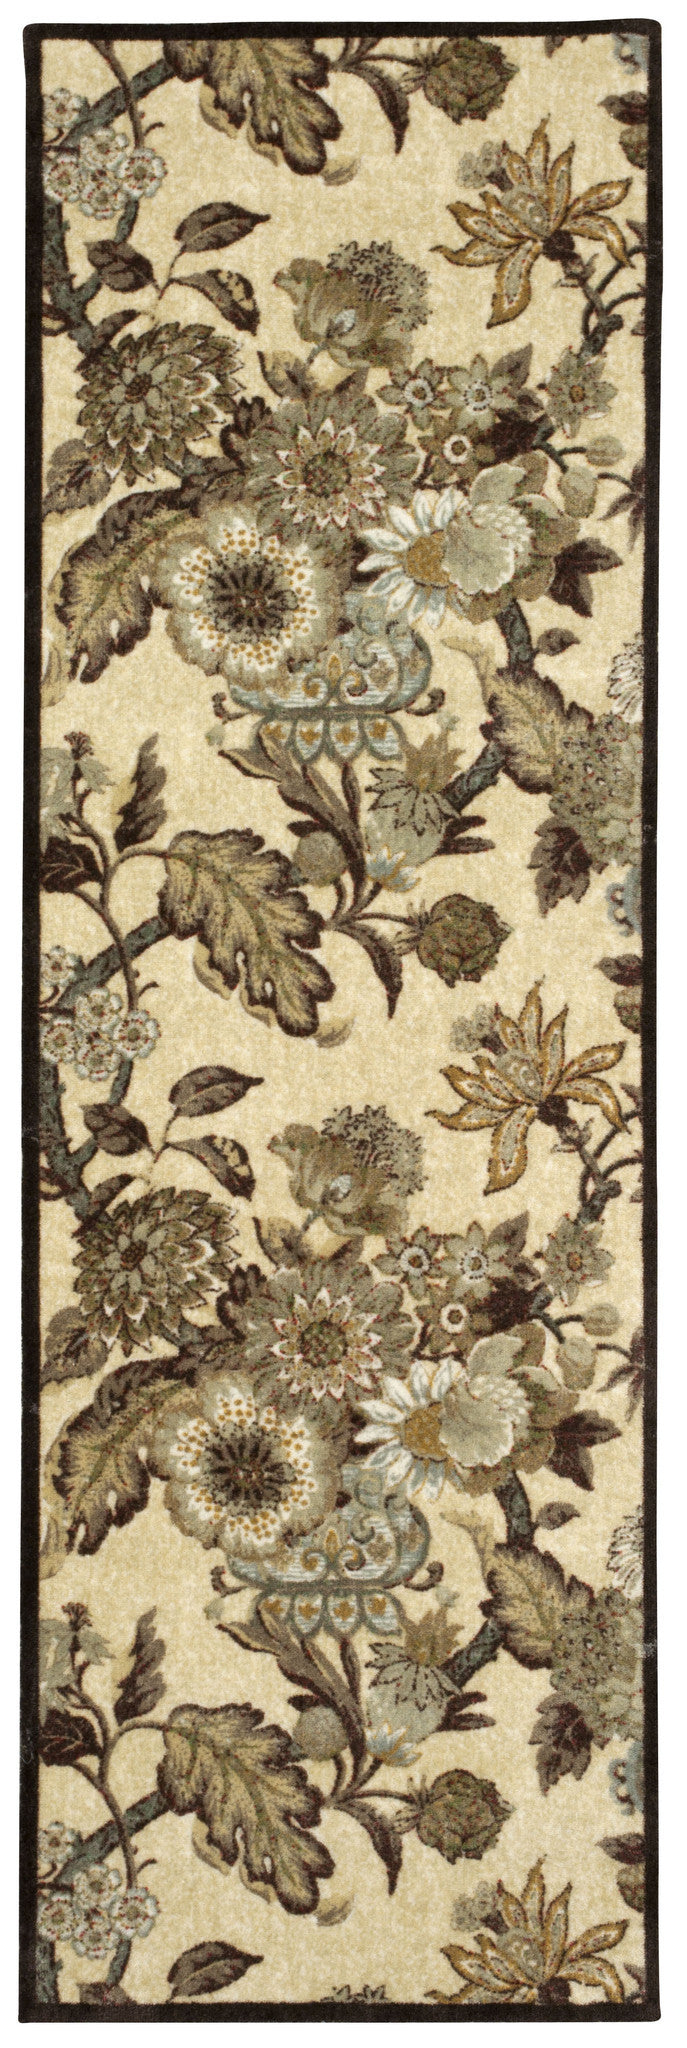 Waverly Artisanal Delight Graceful Garden Birch Area Rug By Nourison WAD20 BIRCH